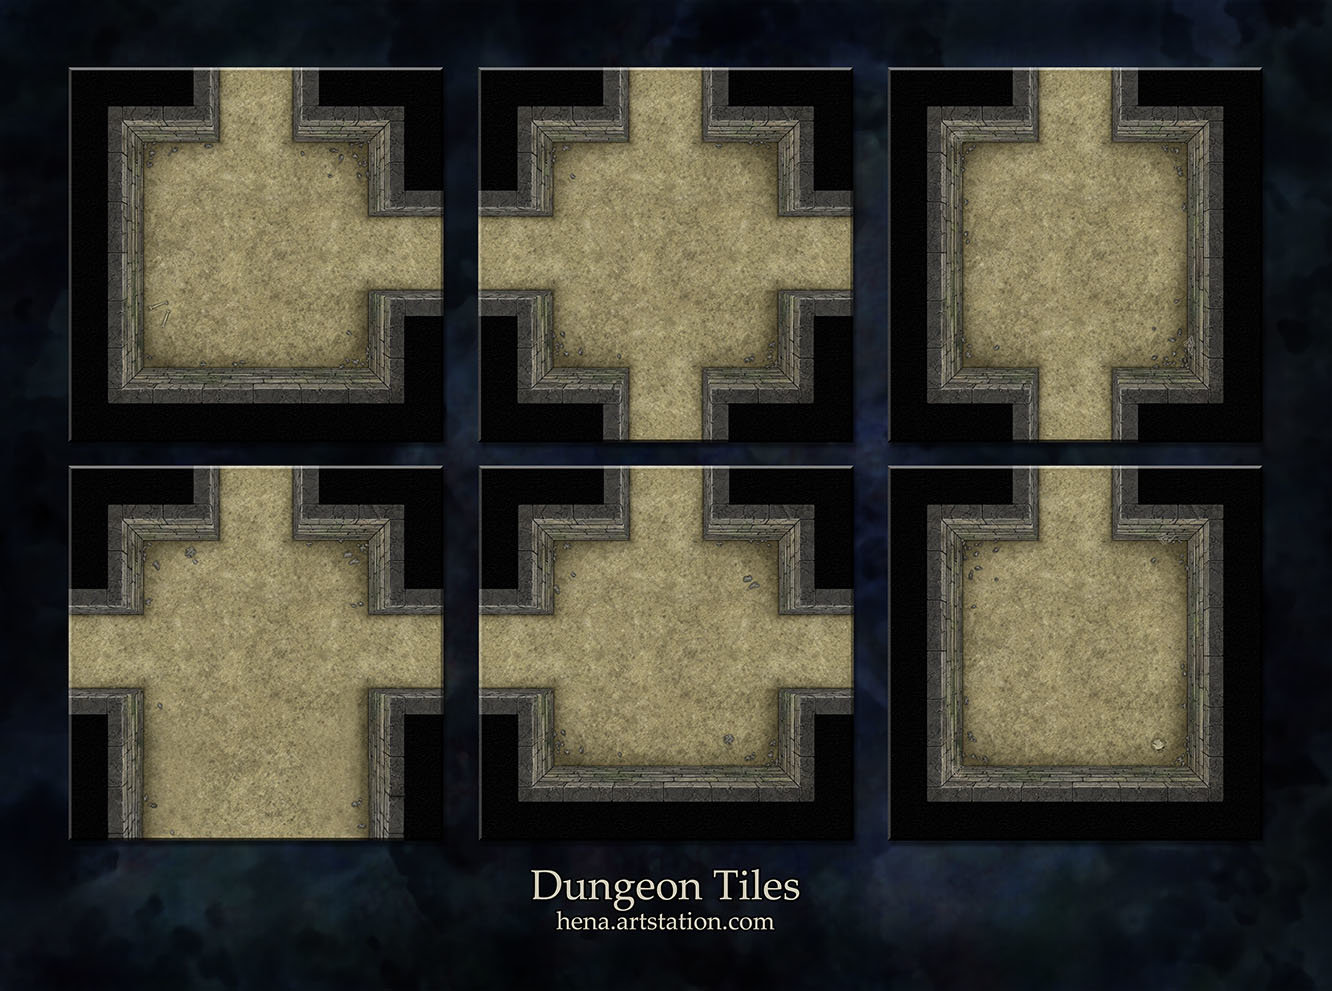 Dungeon rooms